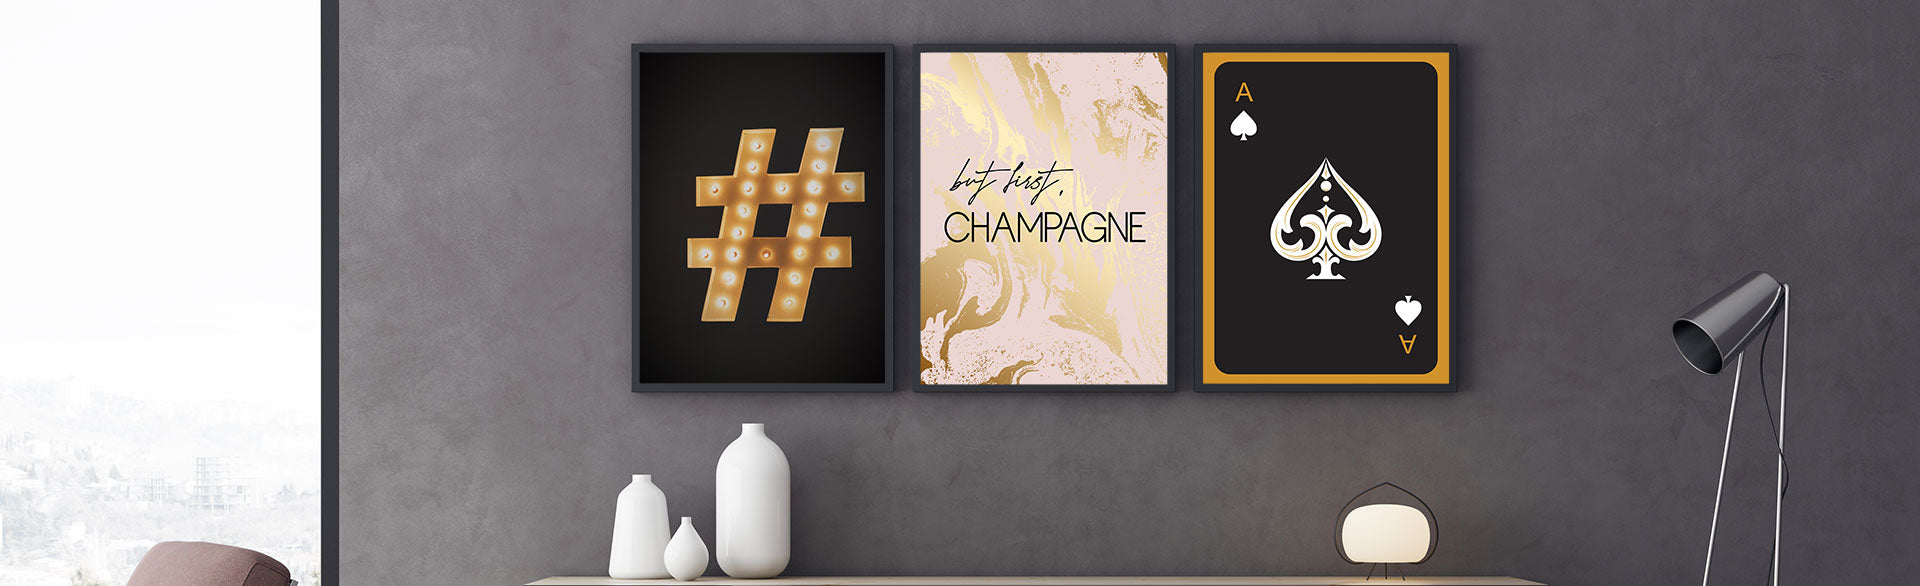 Are you looking to add a touch of gold to your room? Browse our gold collections of poster / canvas prints and choose from ace playing cards prints or gold architecture prints. Browse our collections and start creating your stylish wall art gallery!